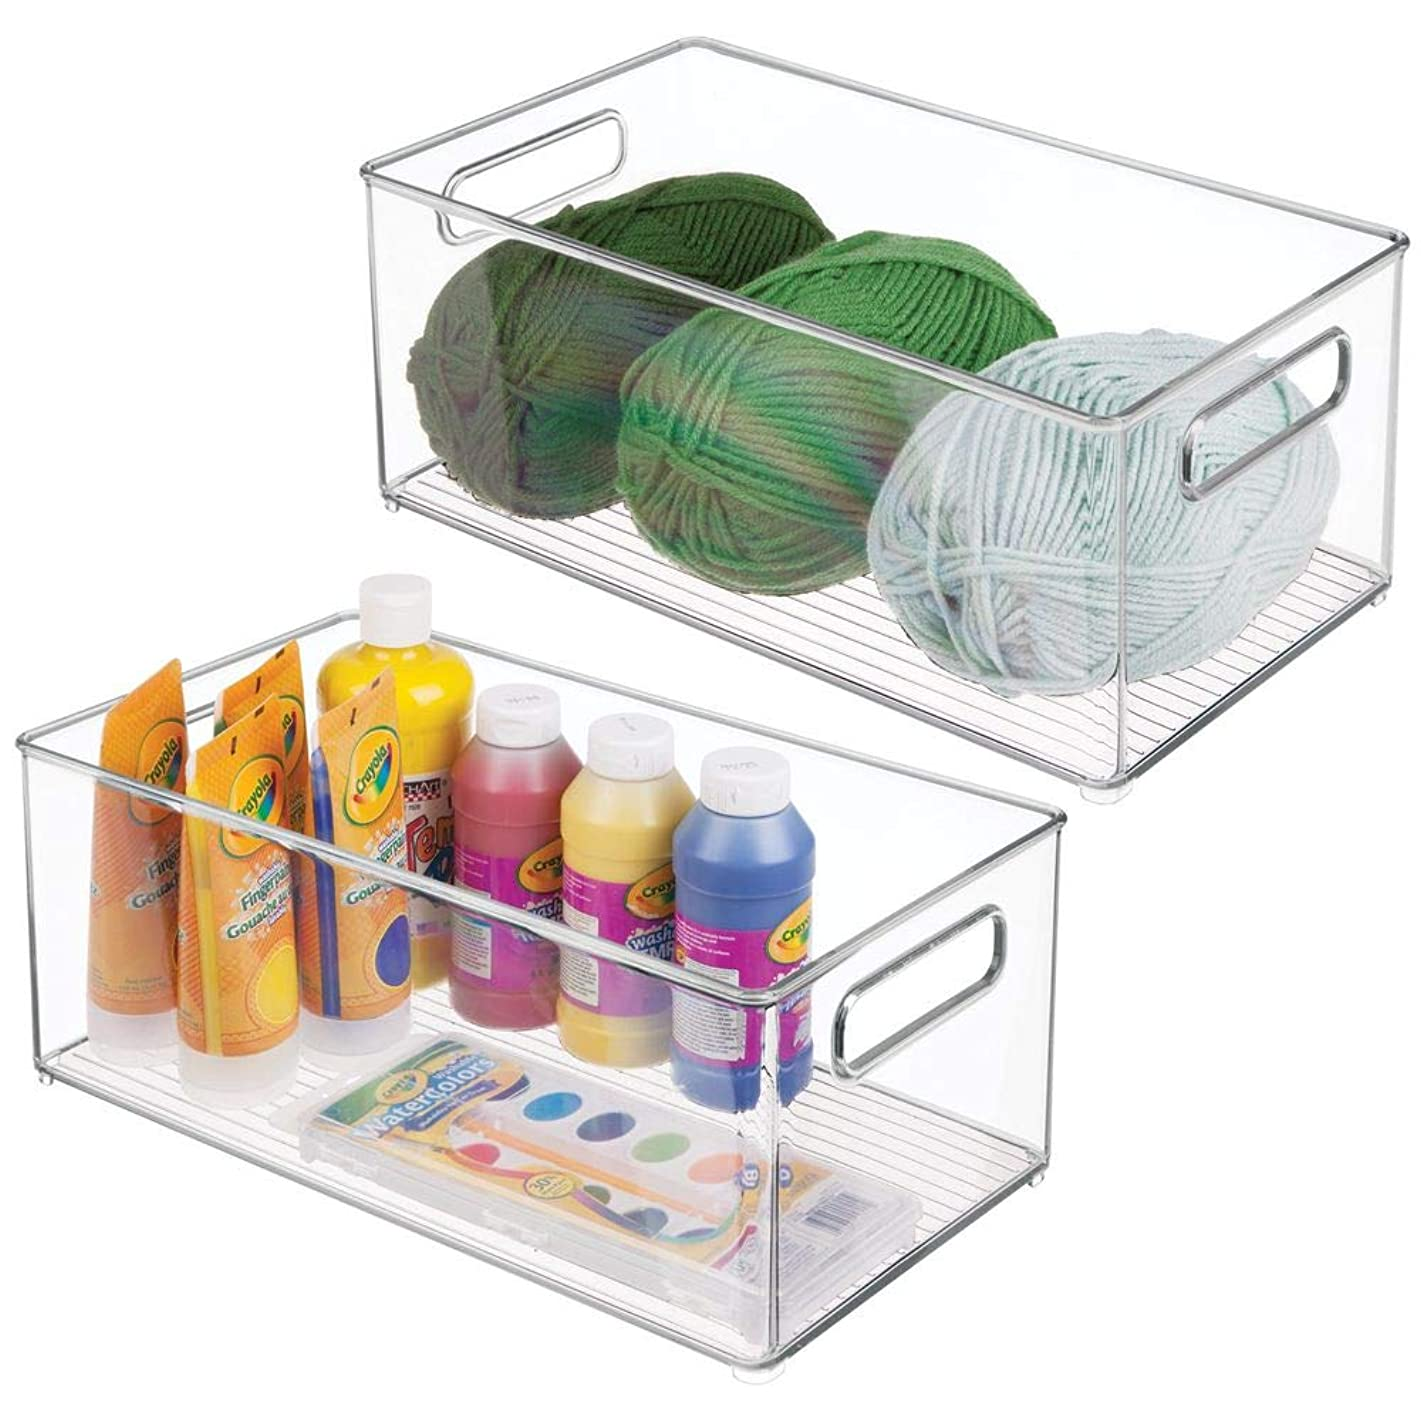 mDesign Large Plastic Storage Organizer Bin - Holds Crafting, Sewing, Art Supplies for Home, Classroom, Studio, Cabinet or Closet - Great for Kids Craft Rooms - 14.5